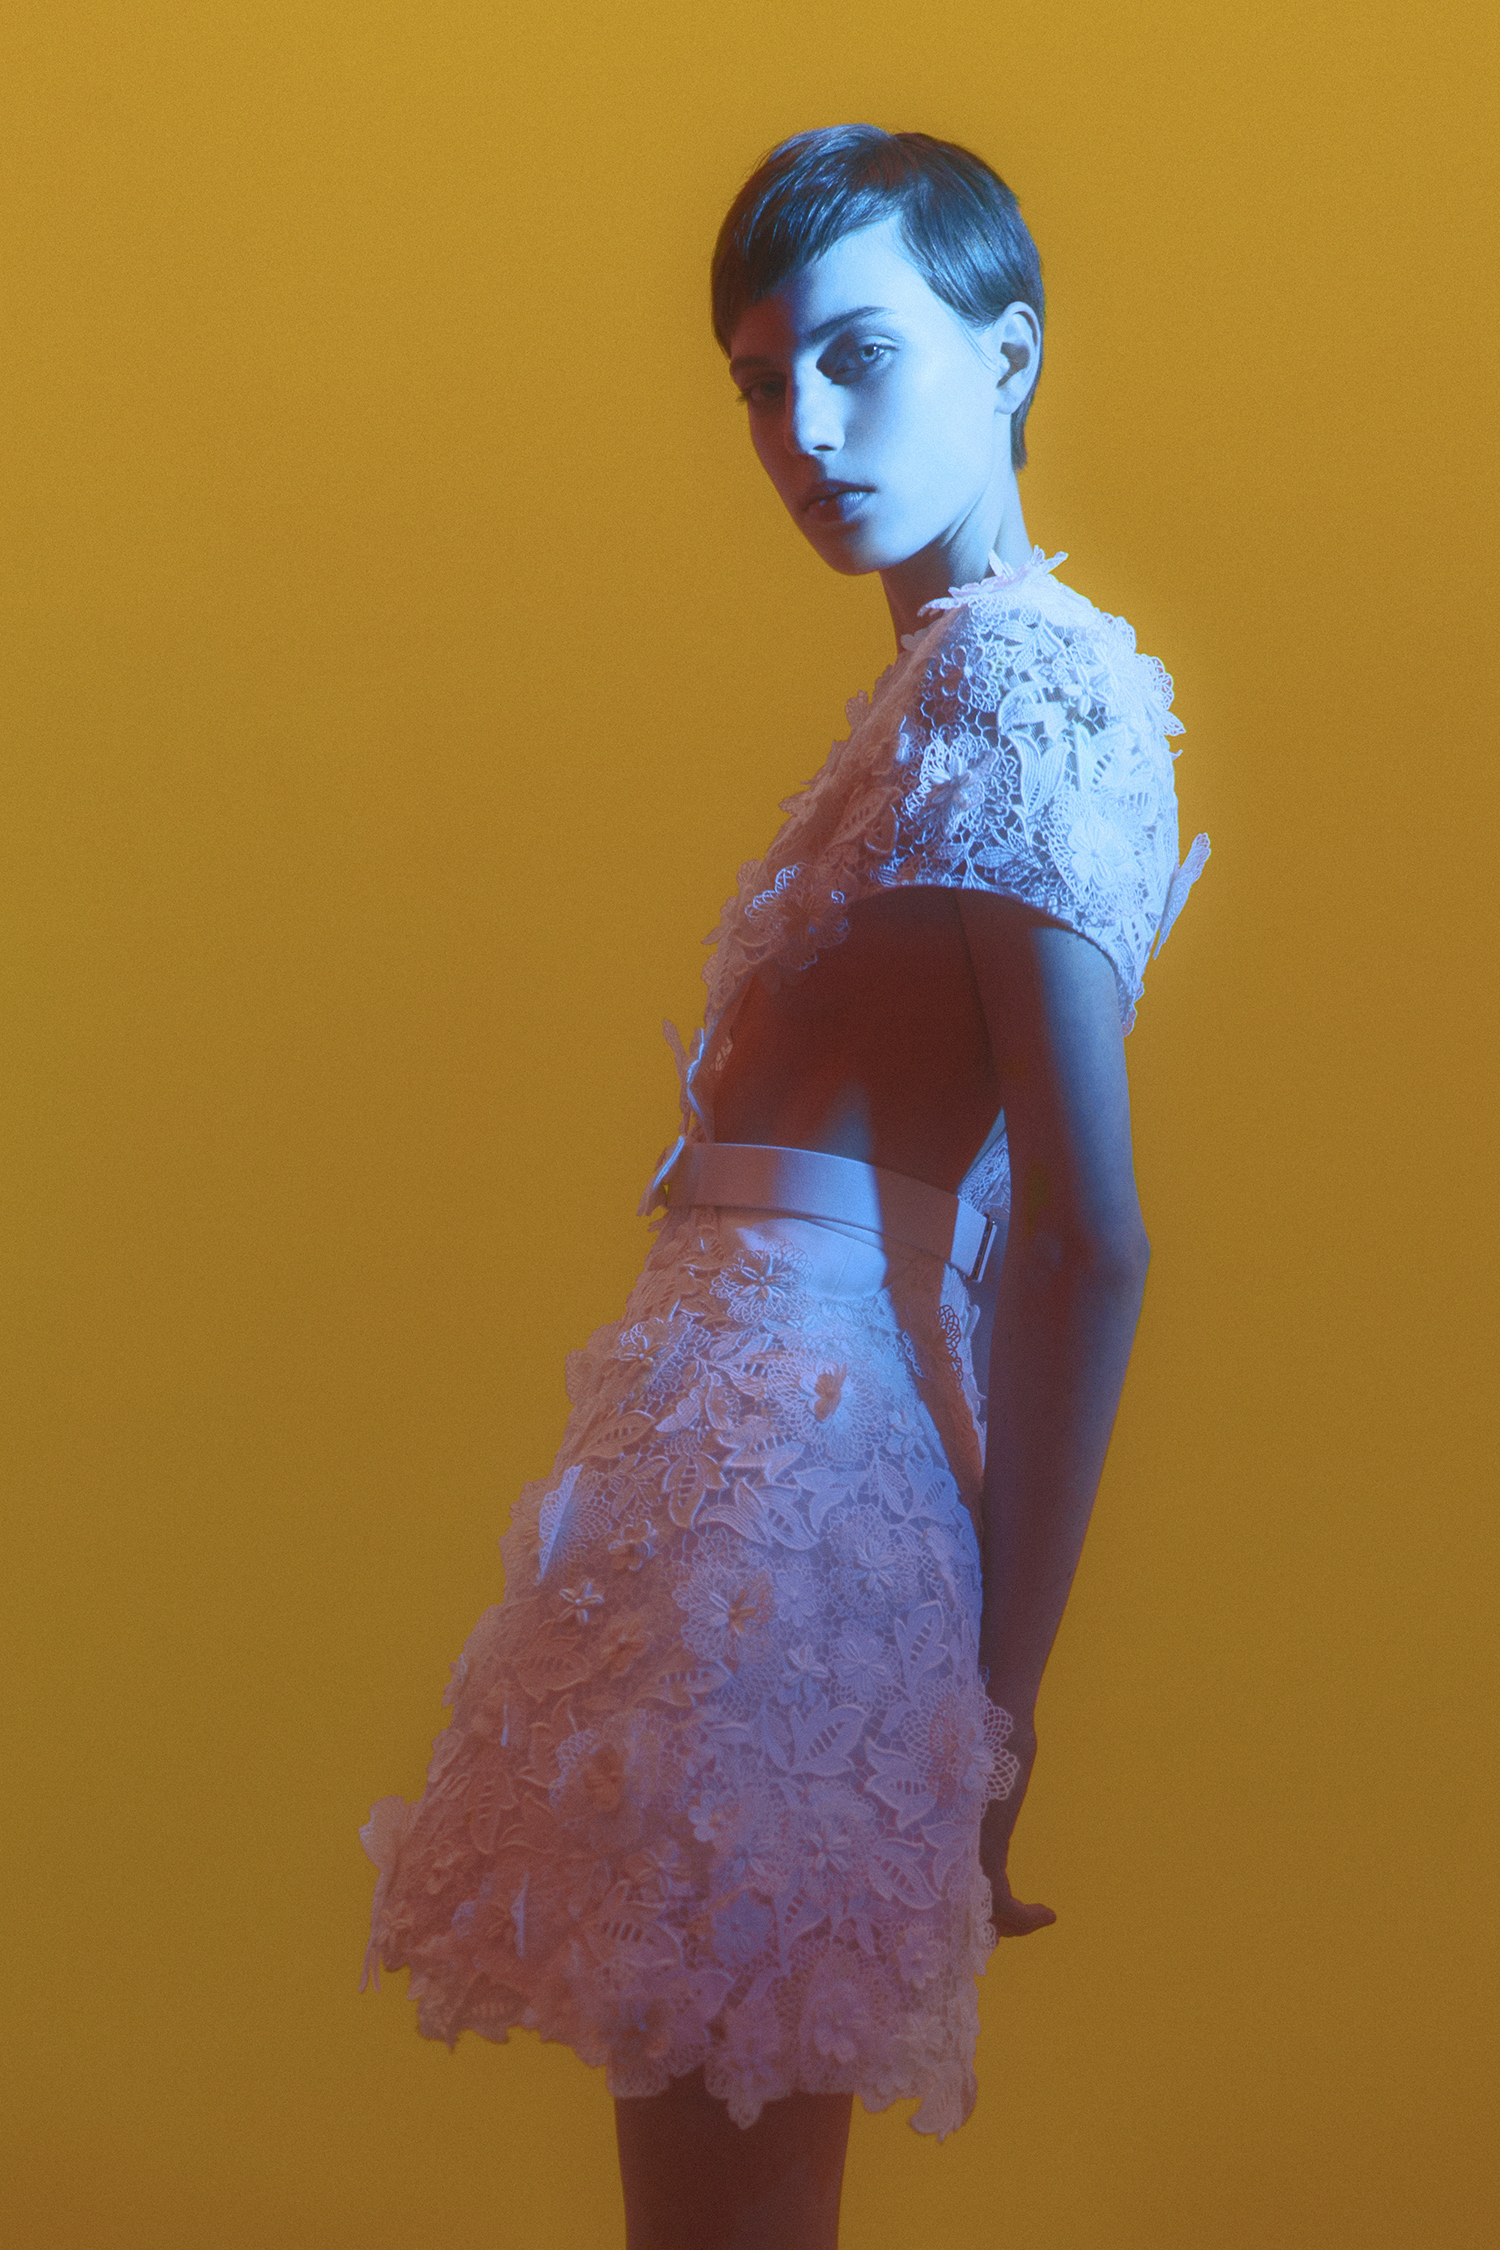 11 - Givenchy Haute Couture - Neil Krug.jpg